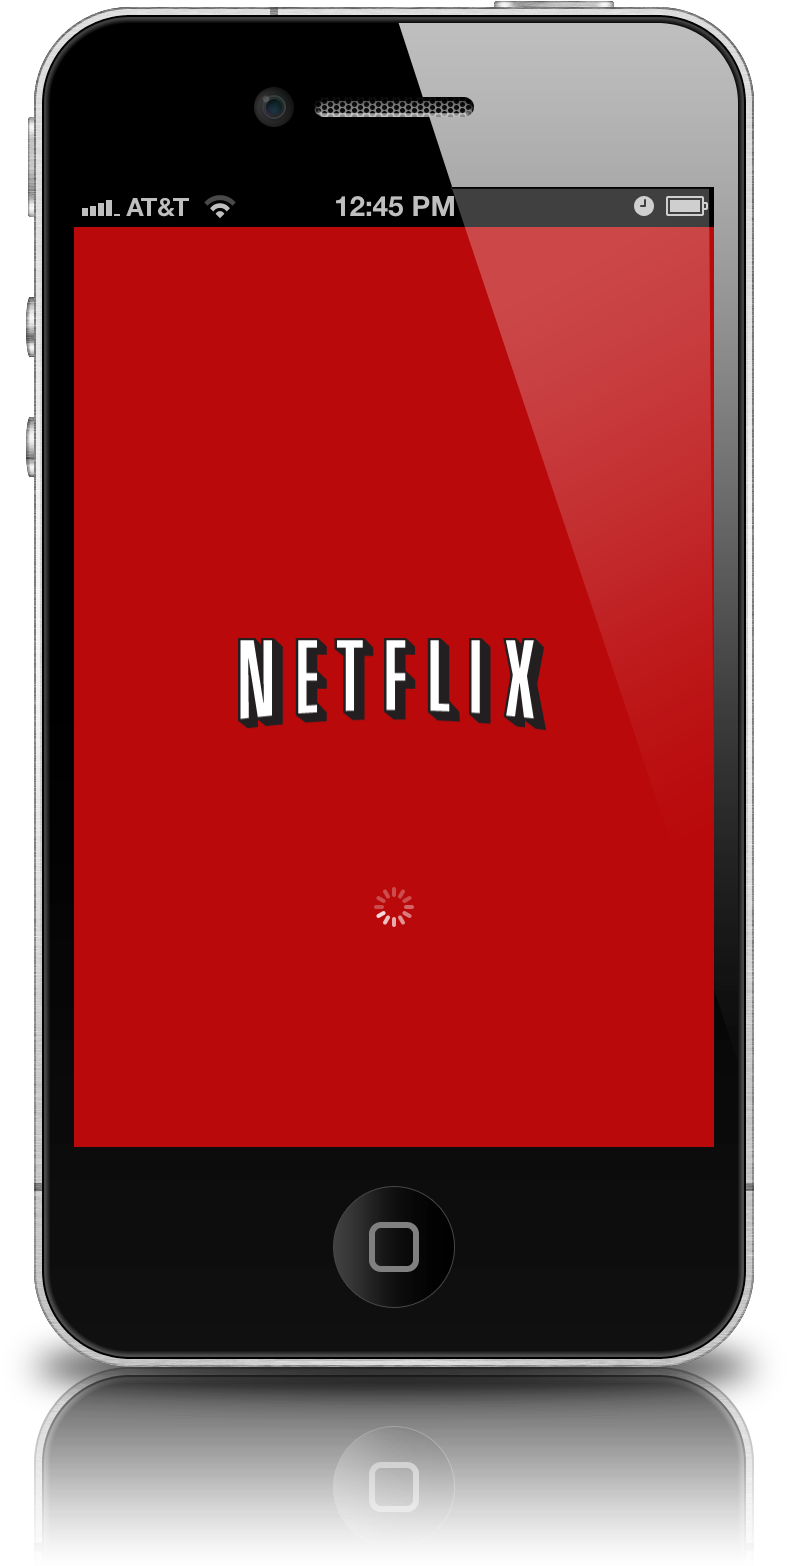 Download Netflix Iphone App Icon - Netflix On An Iphone PNG Image